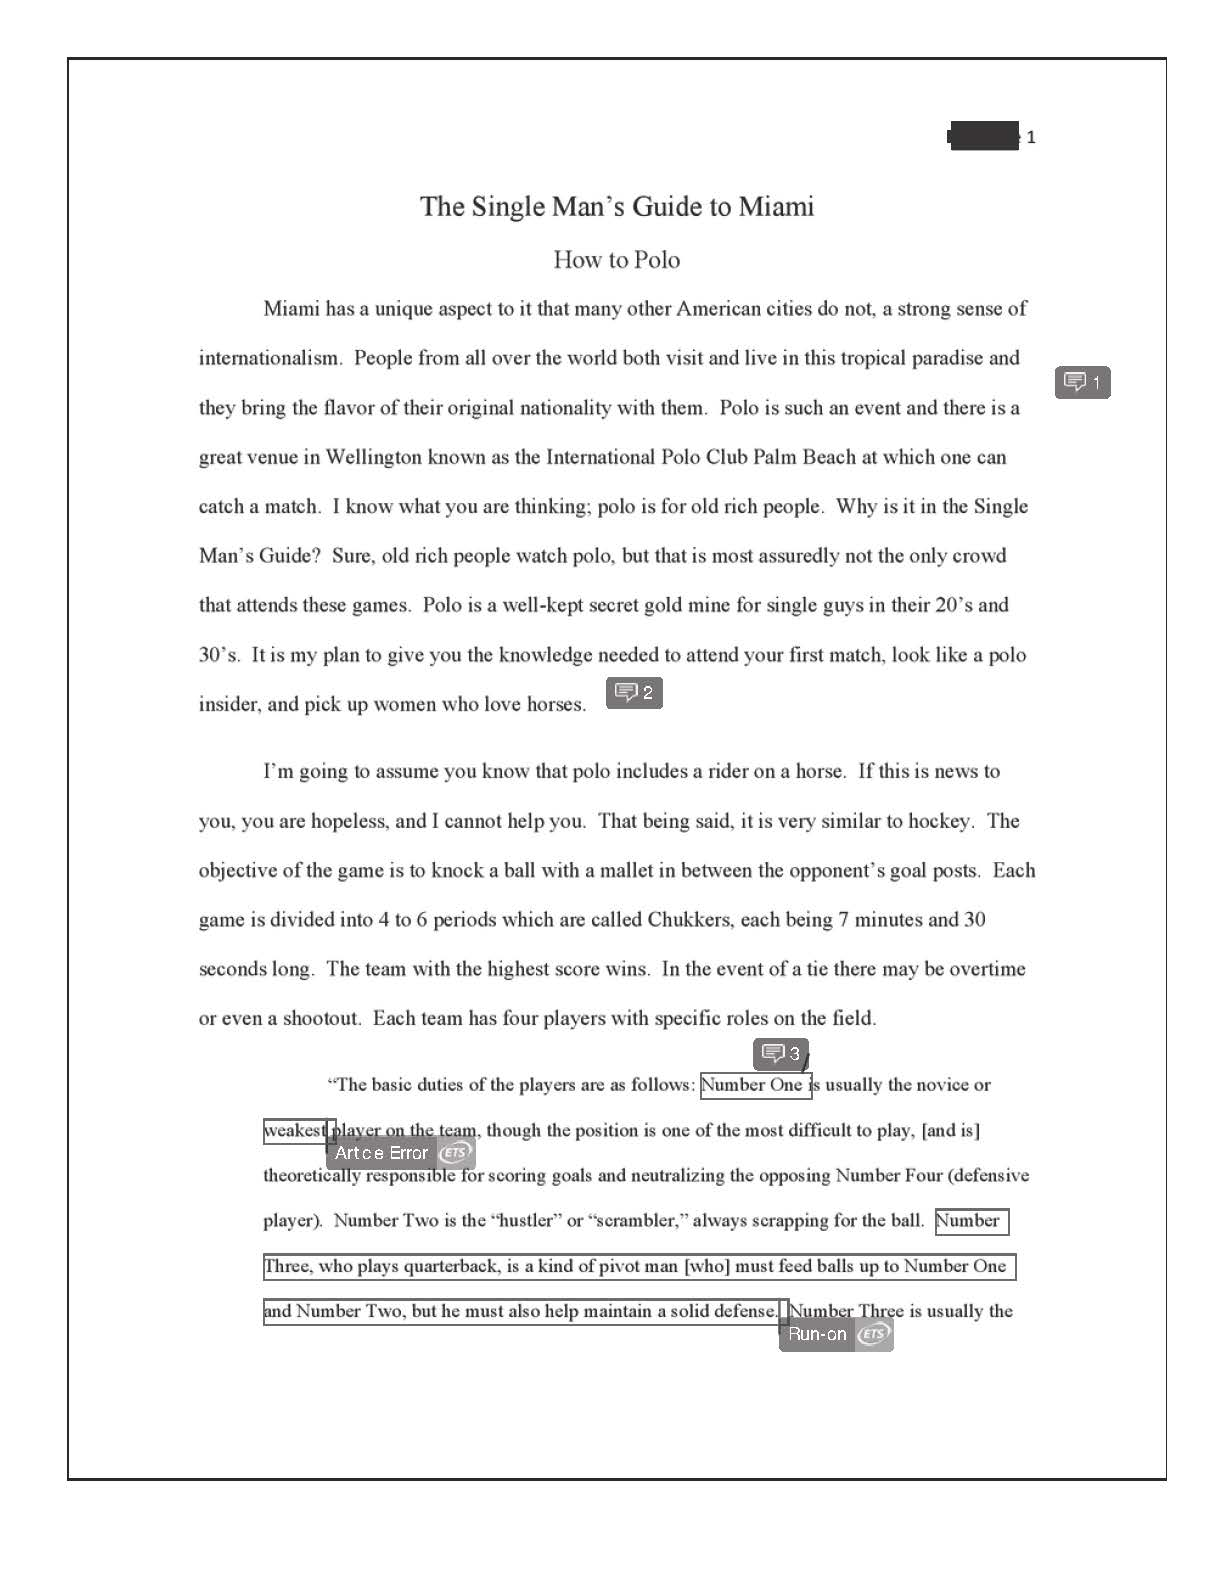 024 Interview Essays Free Informative Essay Final How To Polo Redacted Page 2 Formidable Examples Sample Full